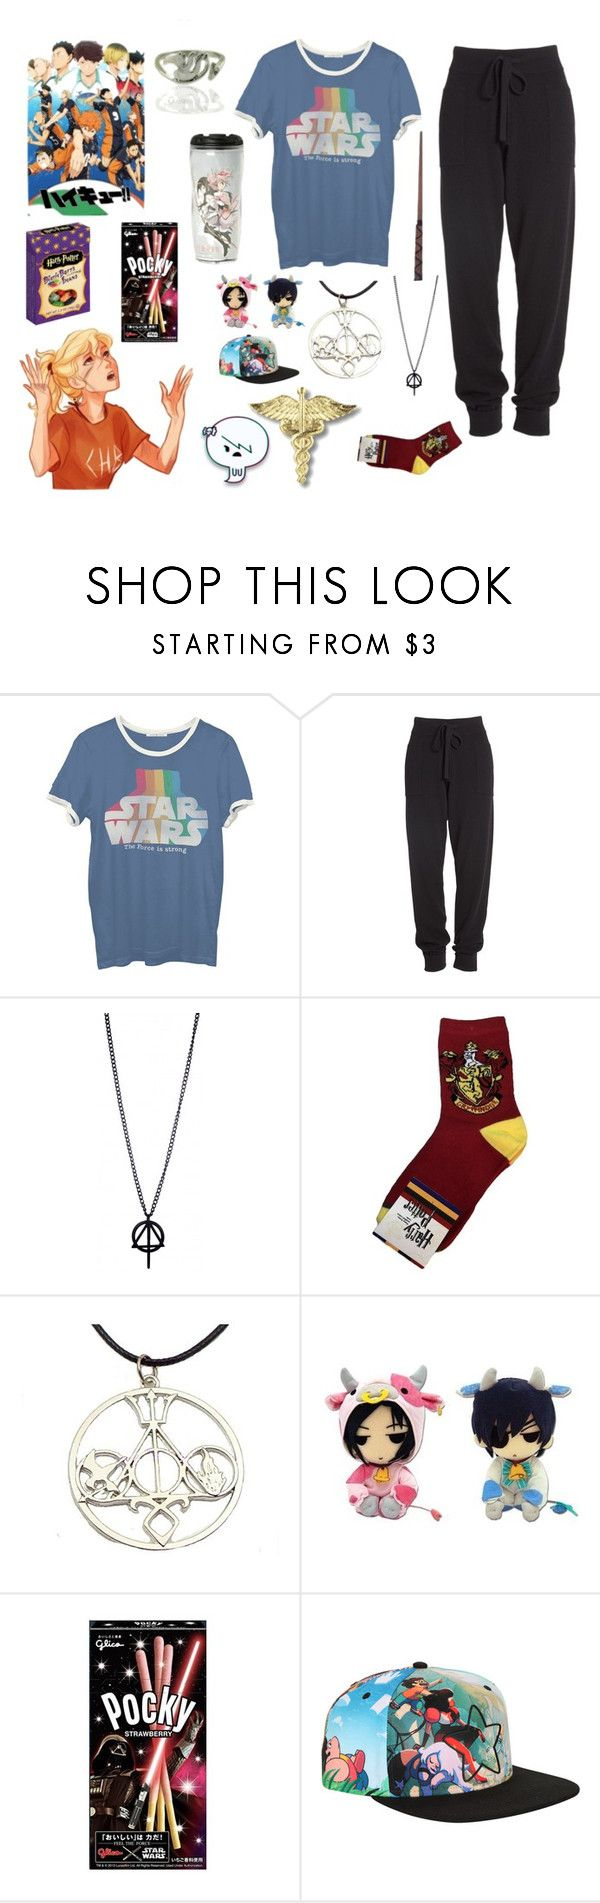 """Current Mood~"" by a-redfern ❤ liked on Polyvore featuring Junk Food Clothing, Donna Karan, Puella and Cartoon Network"